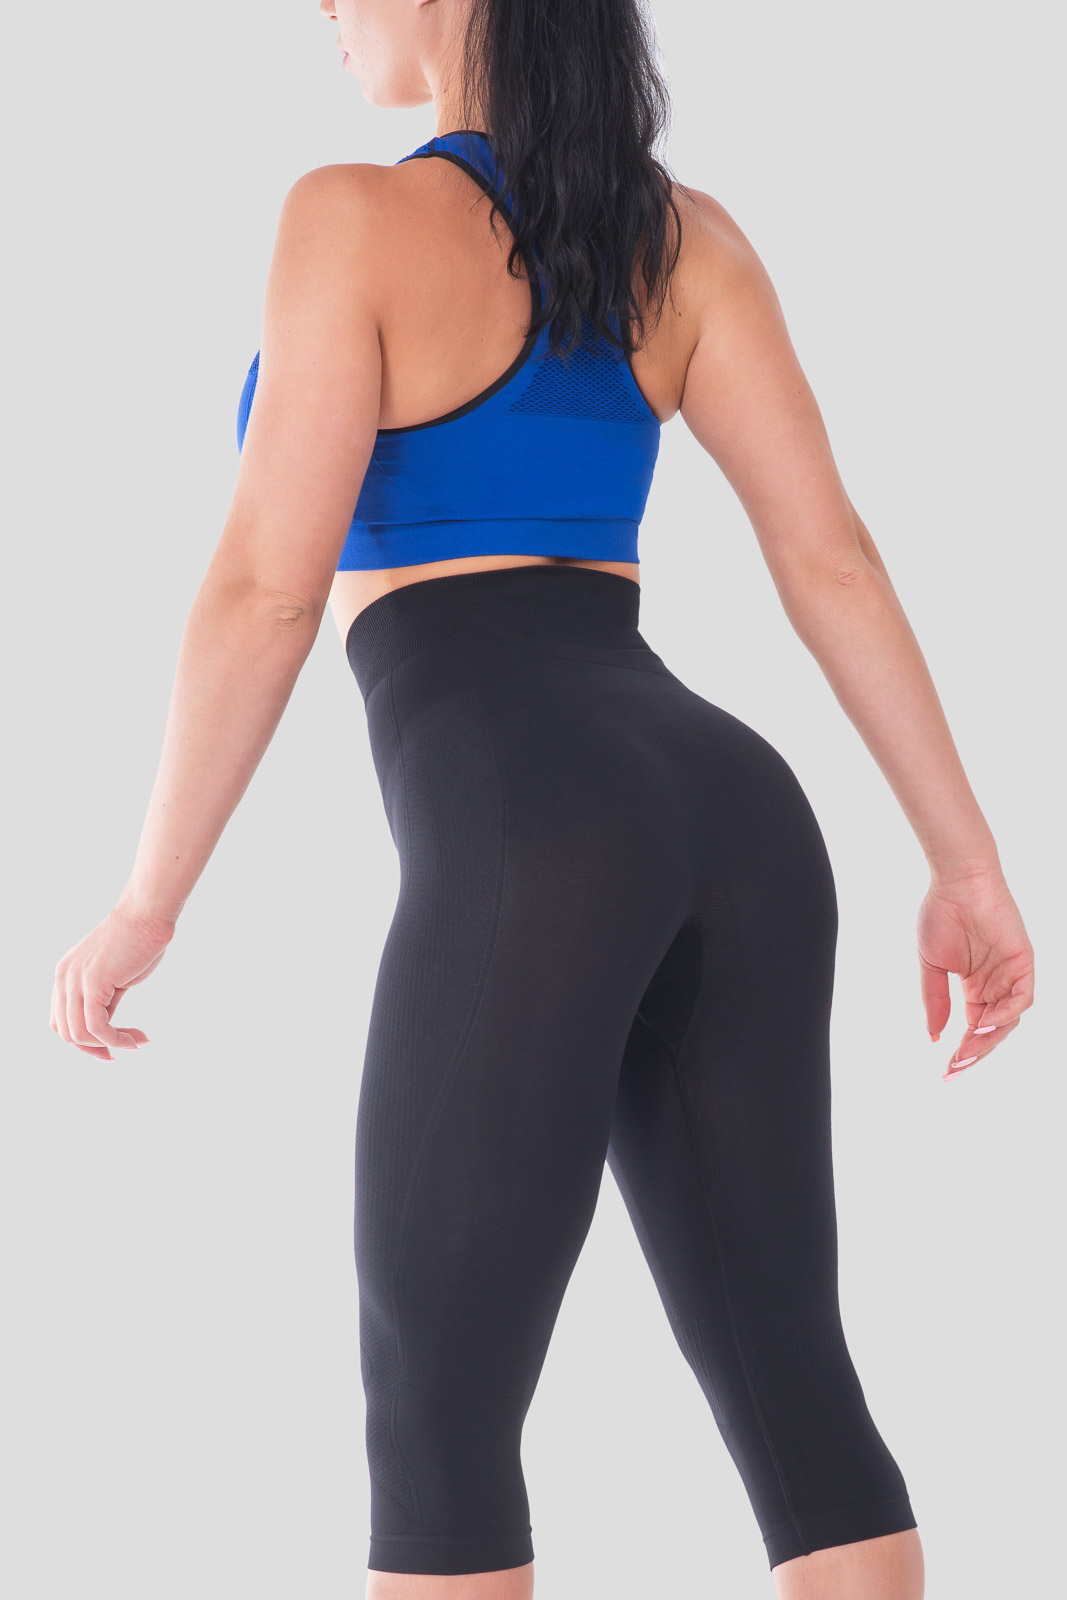 Bellissima-Women-039-s-Capri-Yoga-Pants-Seamless-High-Waisted-Workout-Leggings thumbnail 17